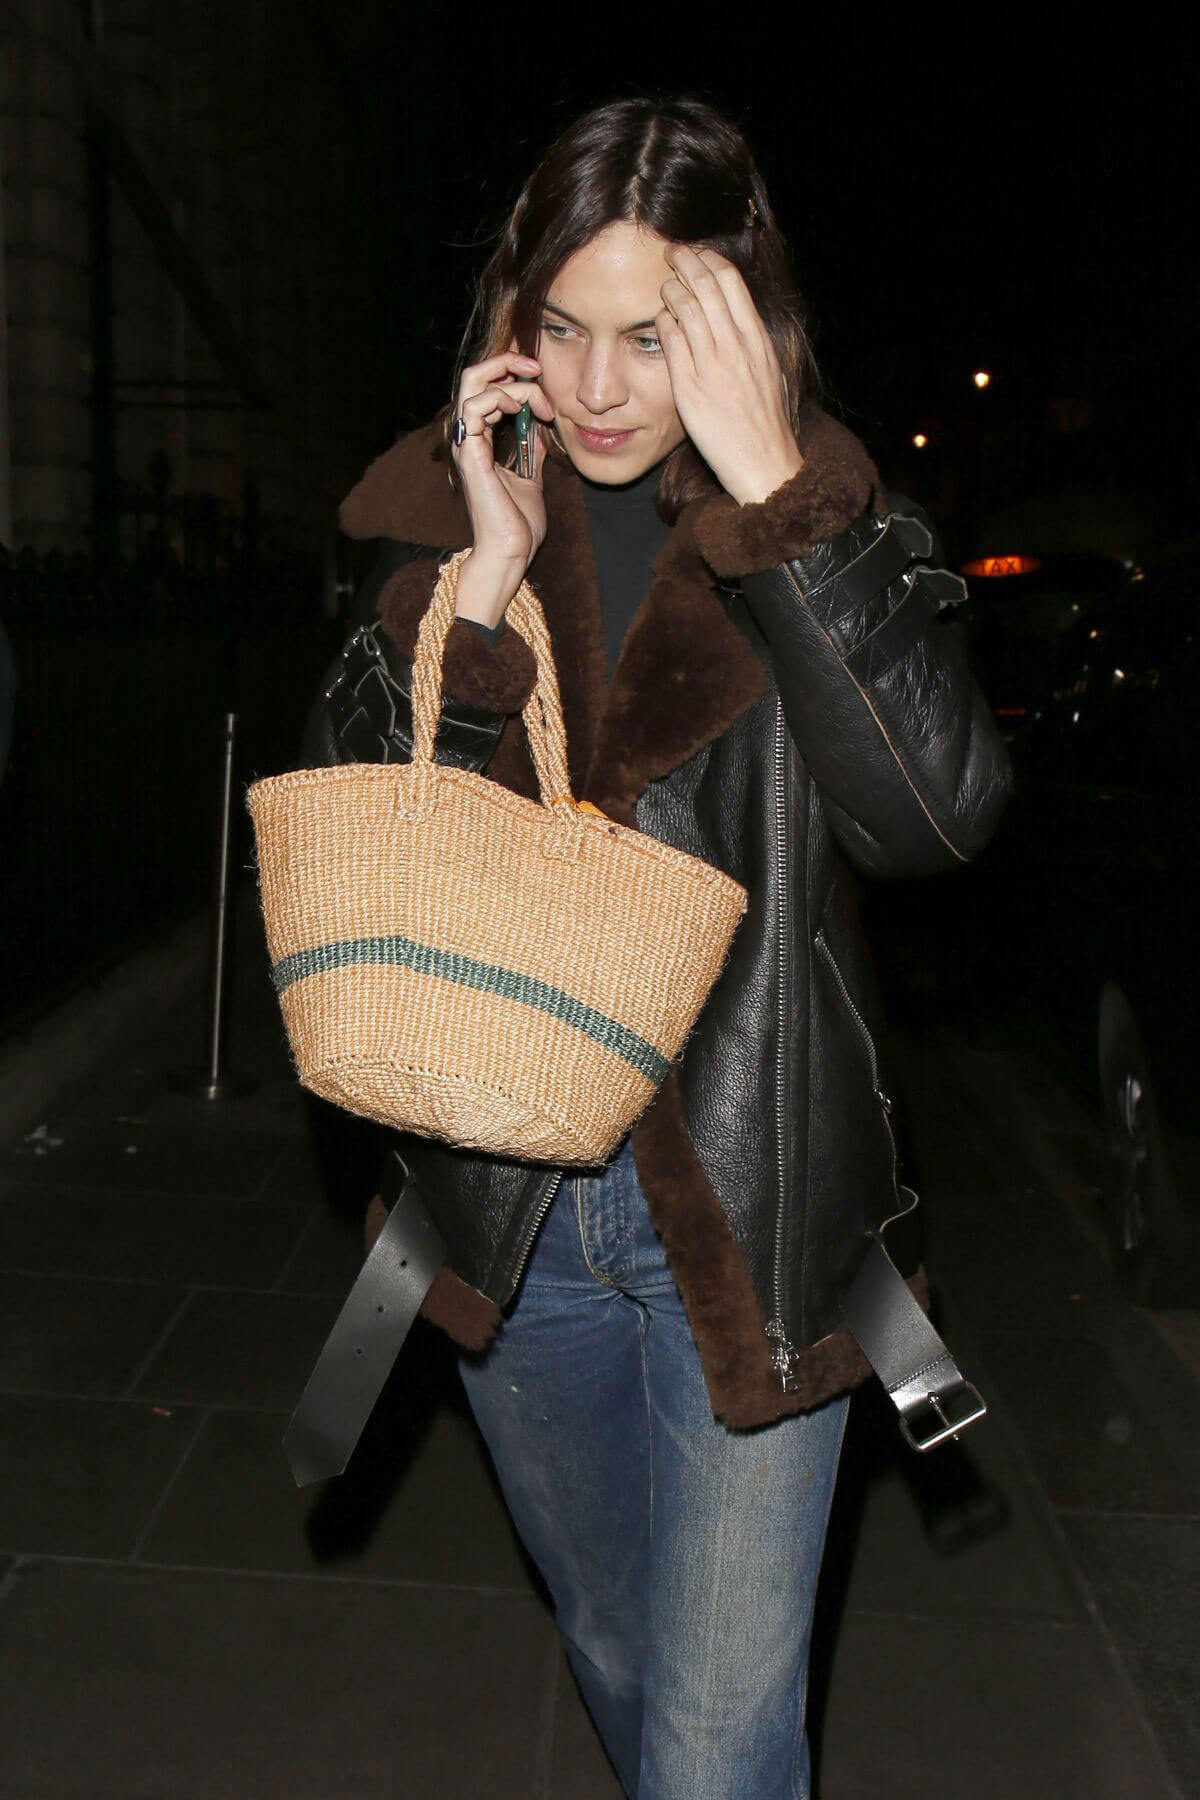 Alexa Chung Stills Night Out in London